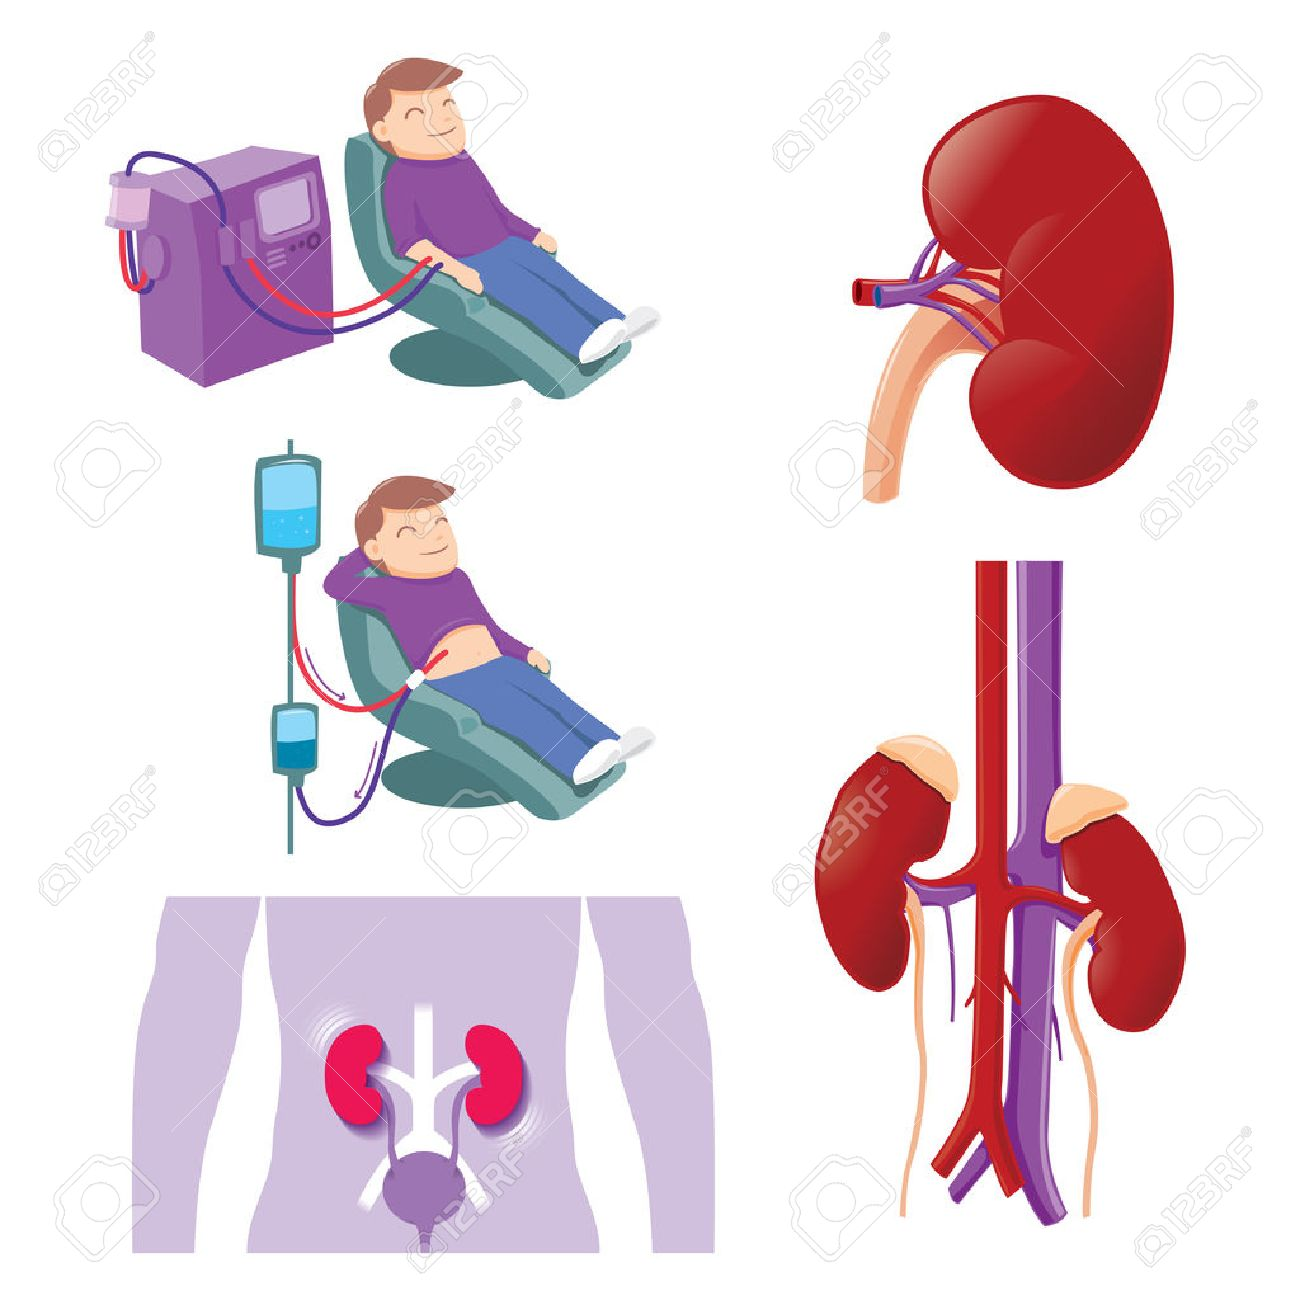 Kidney Stock Photos Royalty Free Kidney Images